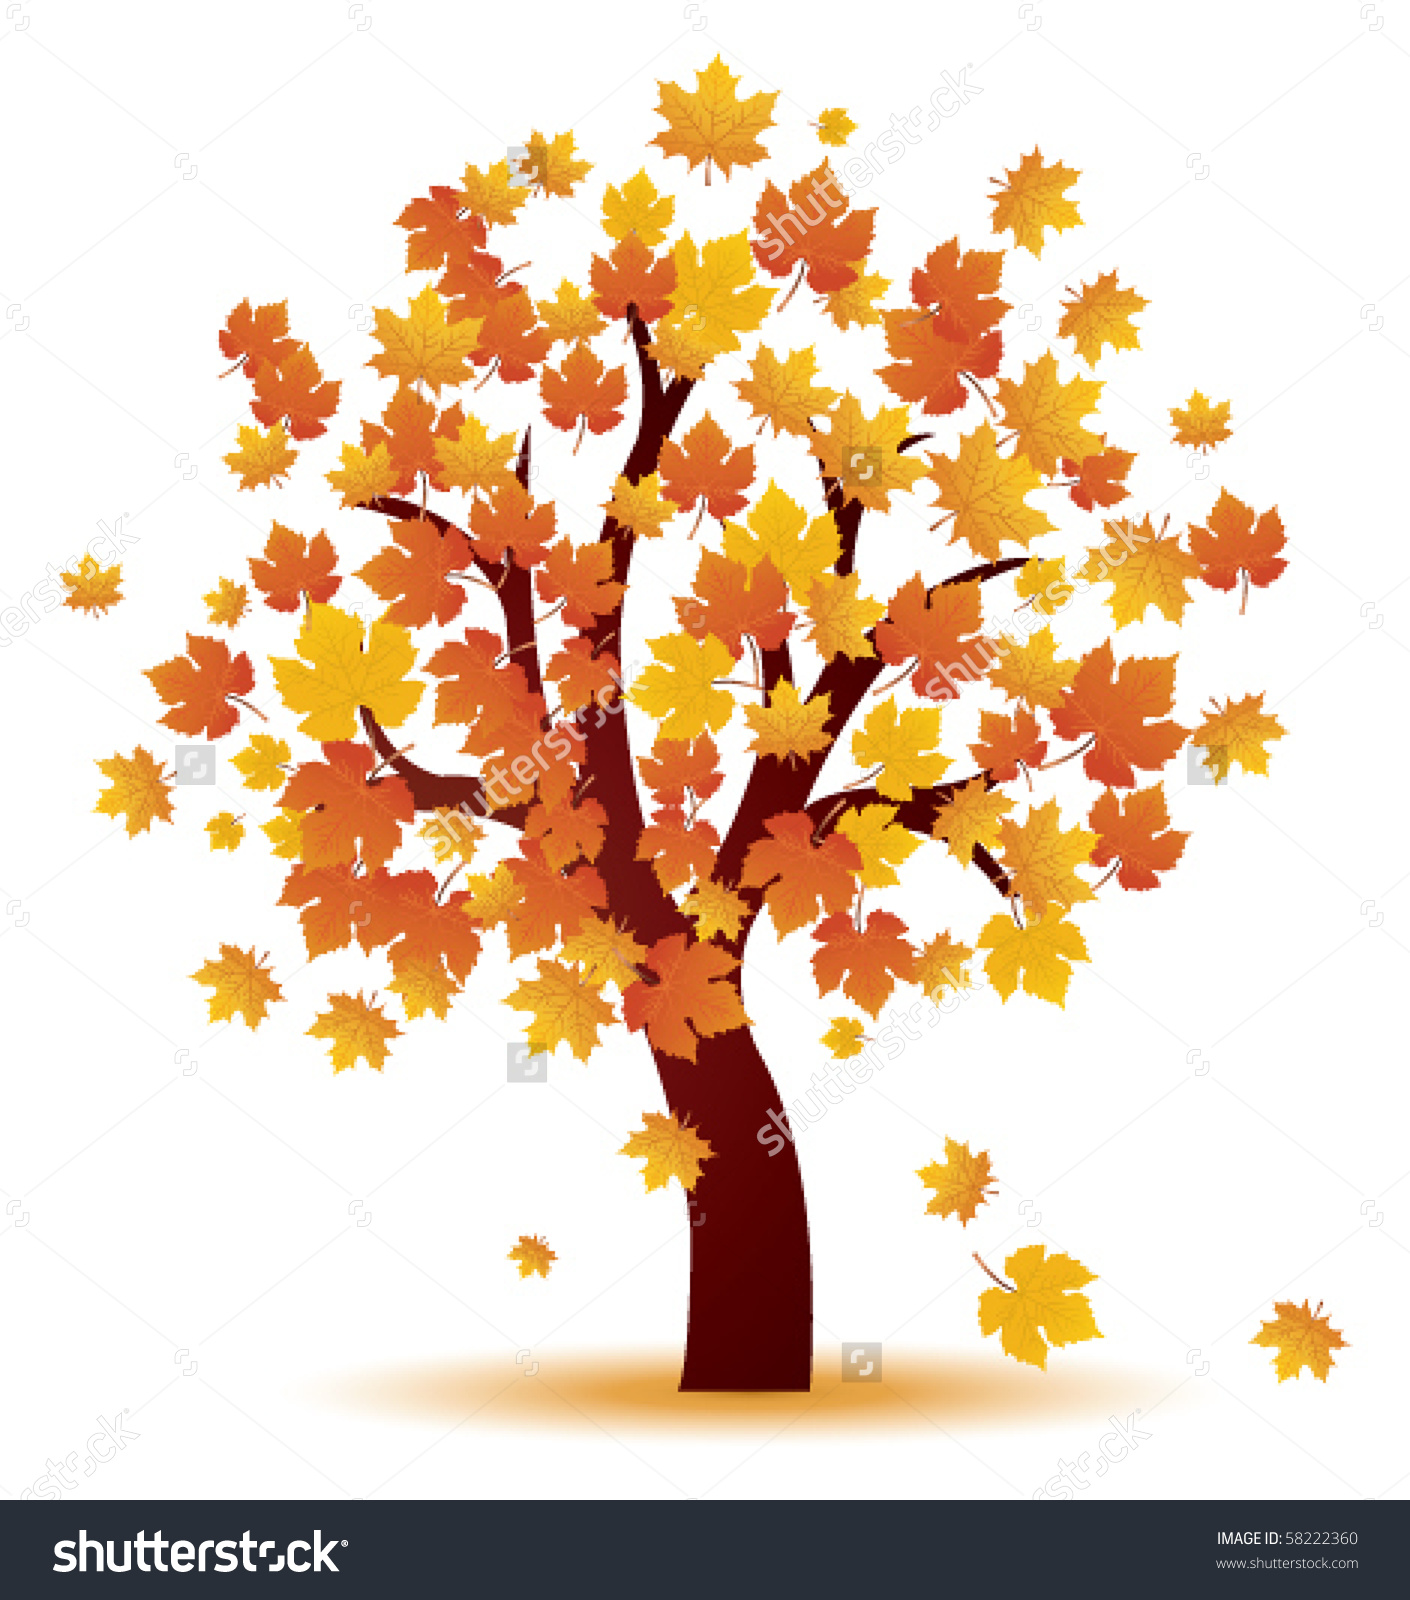 Fall Leaves Clip Art Wallpaper Top Autumn Tree Picture 1410x1600 Full Hd Wall